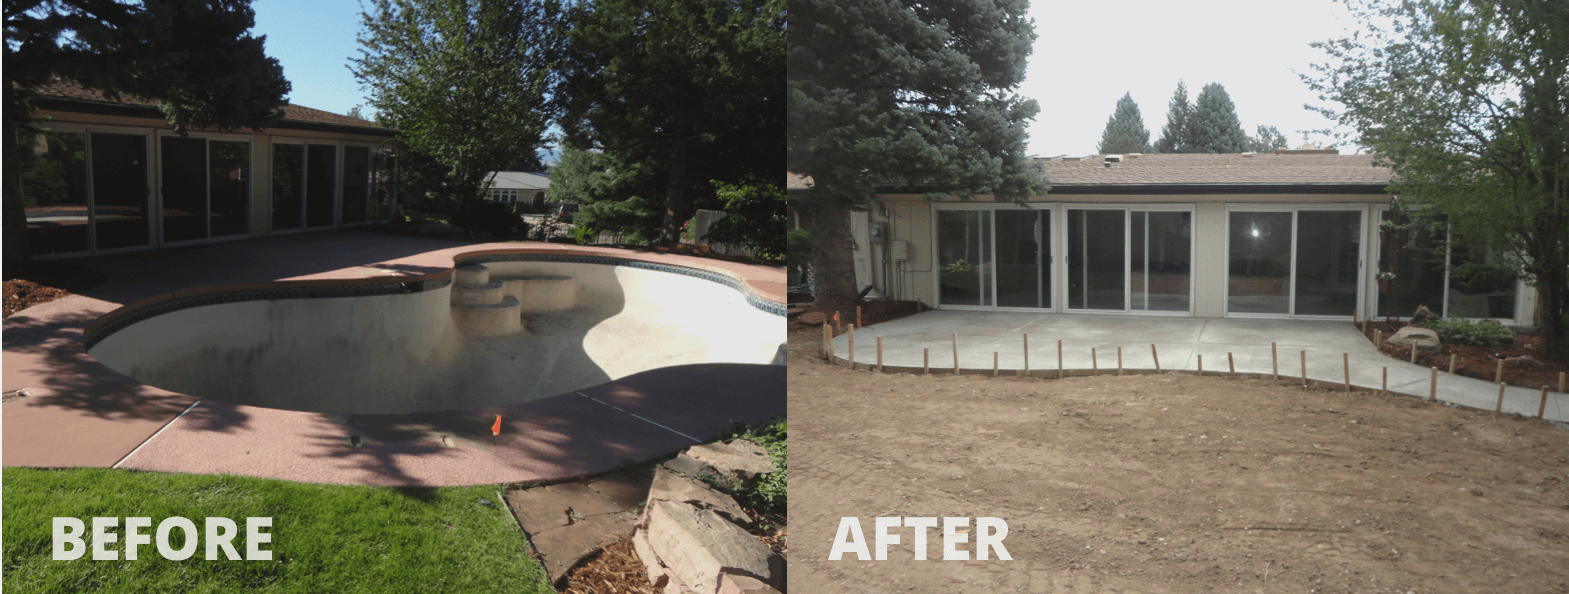 Mack Land LLC - Lakewood, CO – Pool removal